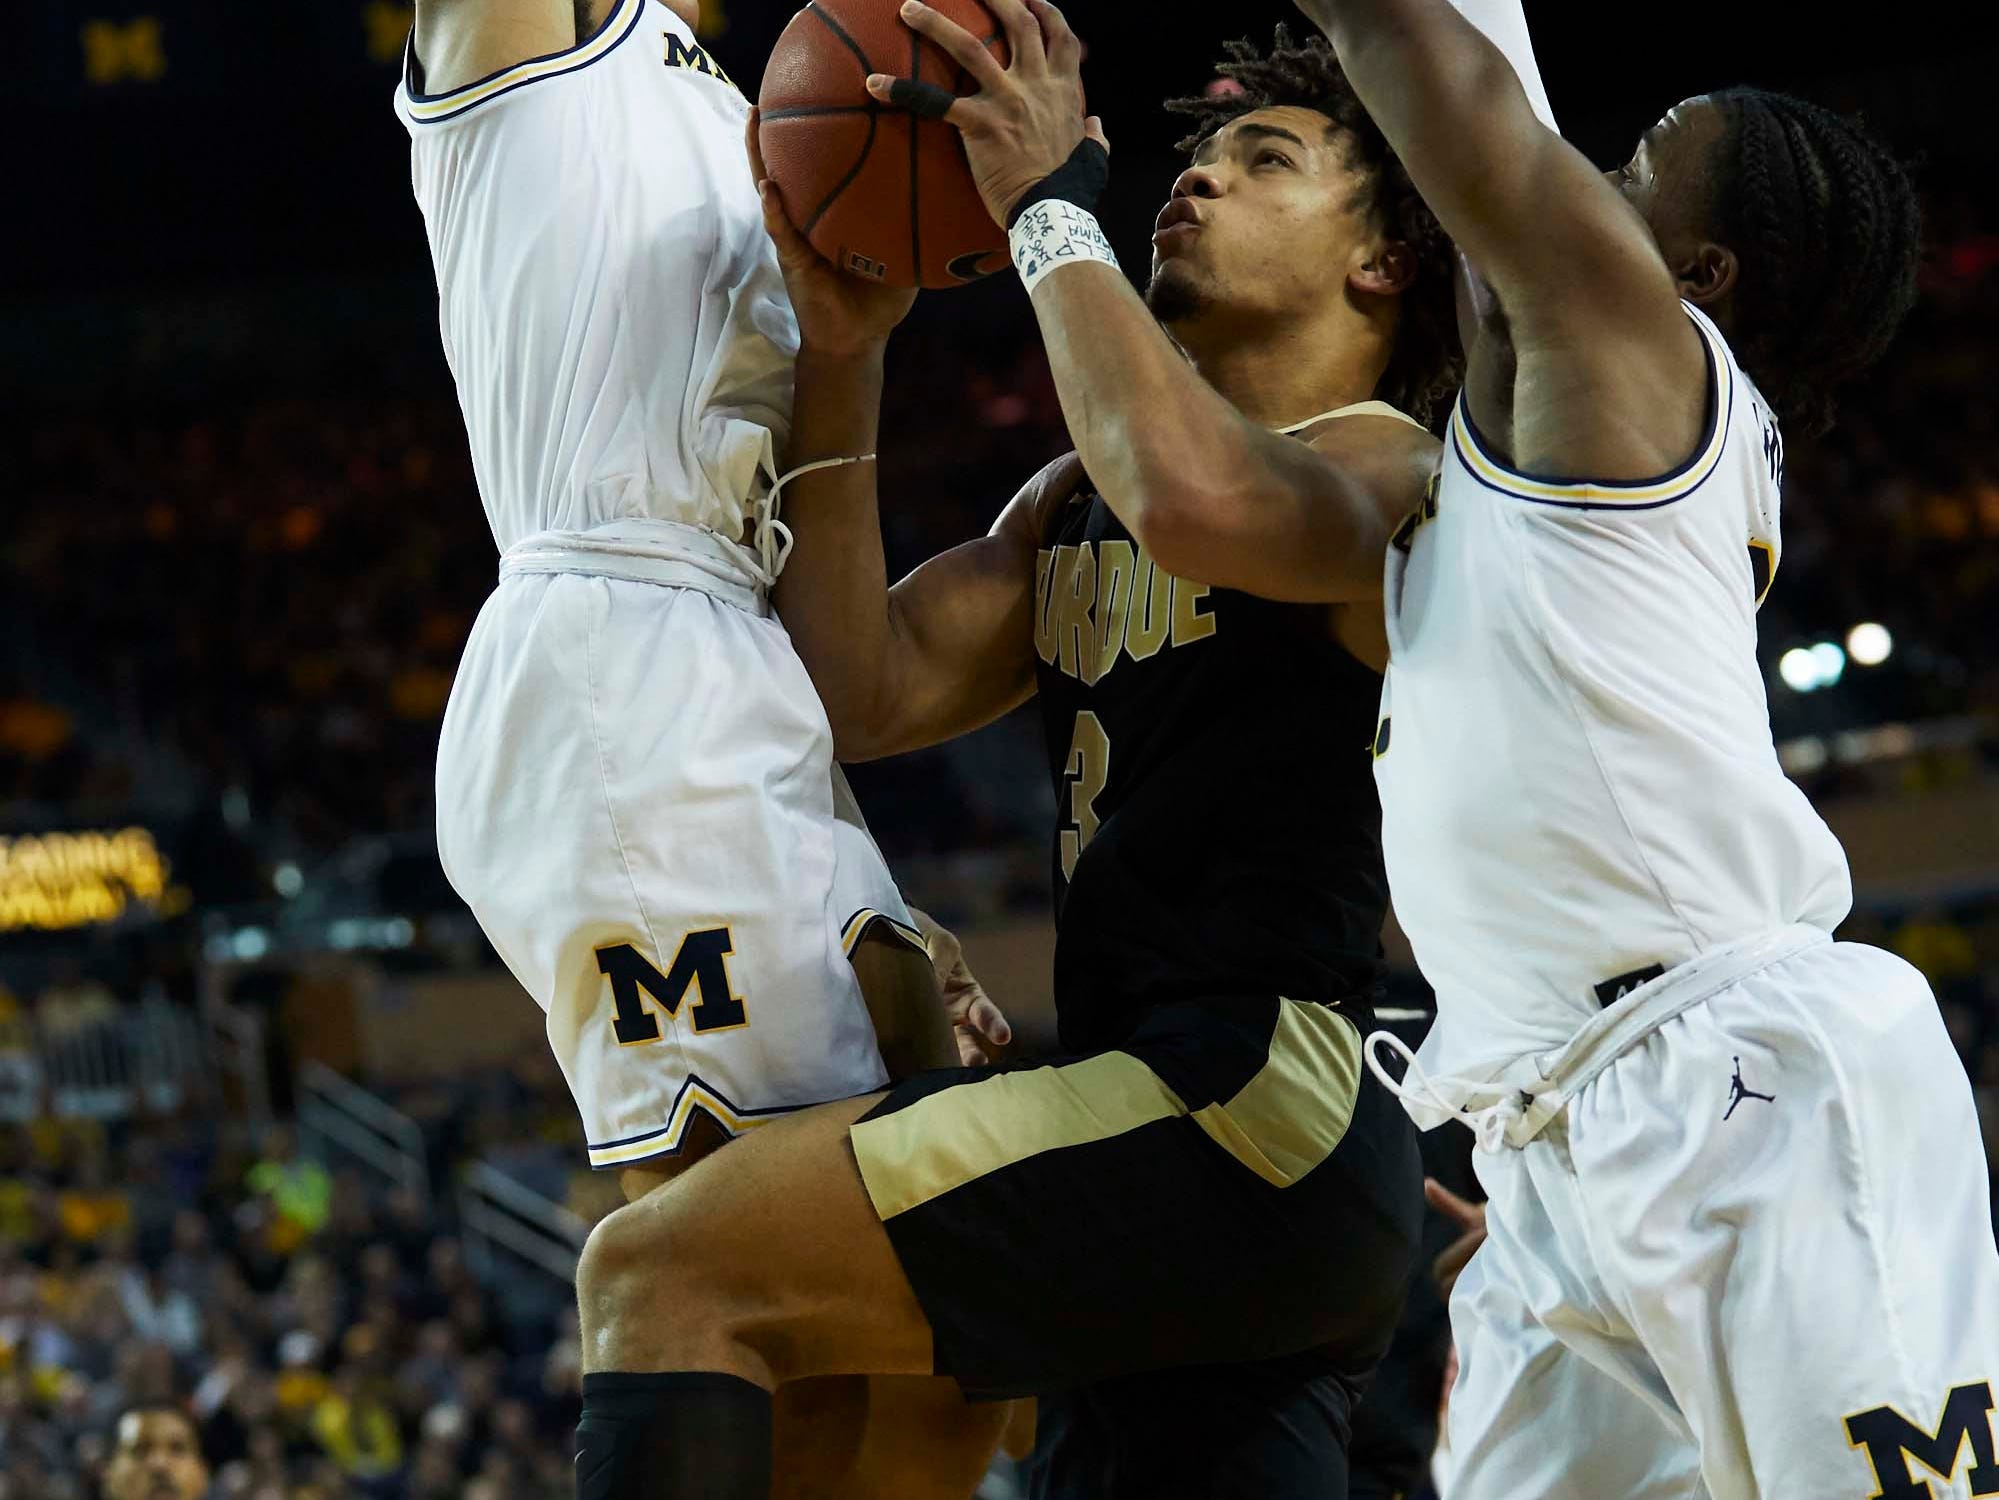 Dec 1, 2018; Ann Arbor, MI, USA; Michigan Wolverines guard Jordan Poole (2) goes to the basket defended by Michigan Wolverines guard Jordan Poole (left) and guard Zavier Simpson (right) in the second half at Crisler Center. Mandatory Credit: Rick Osentoski-USA TODAY Sports